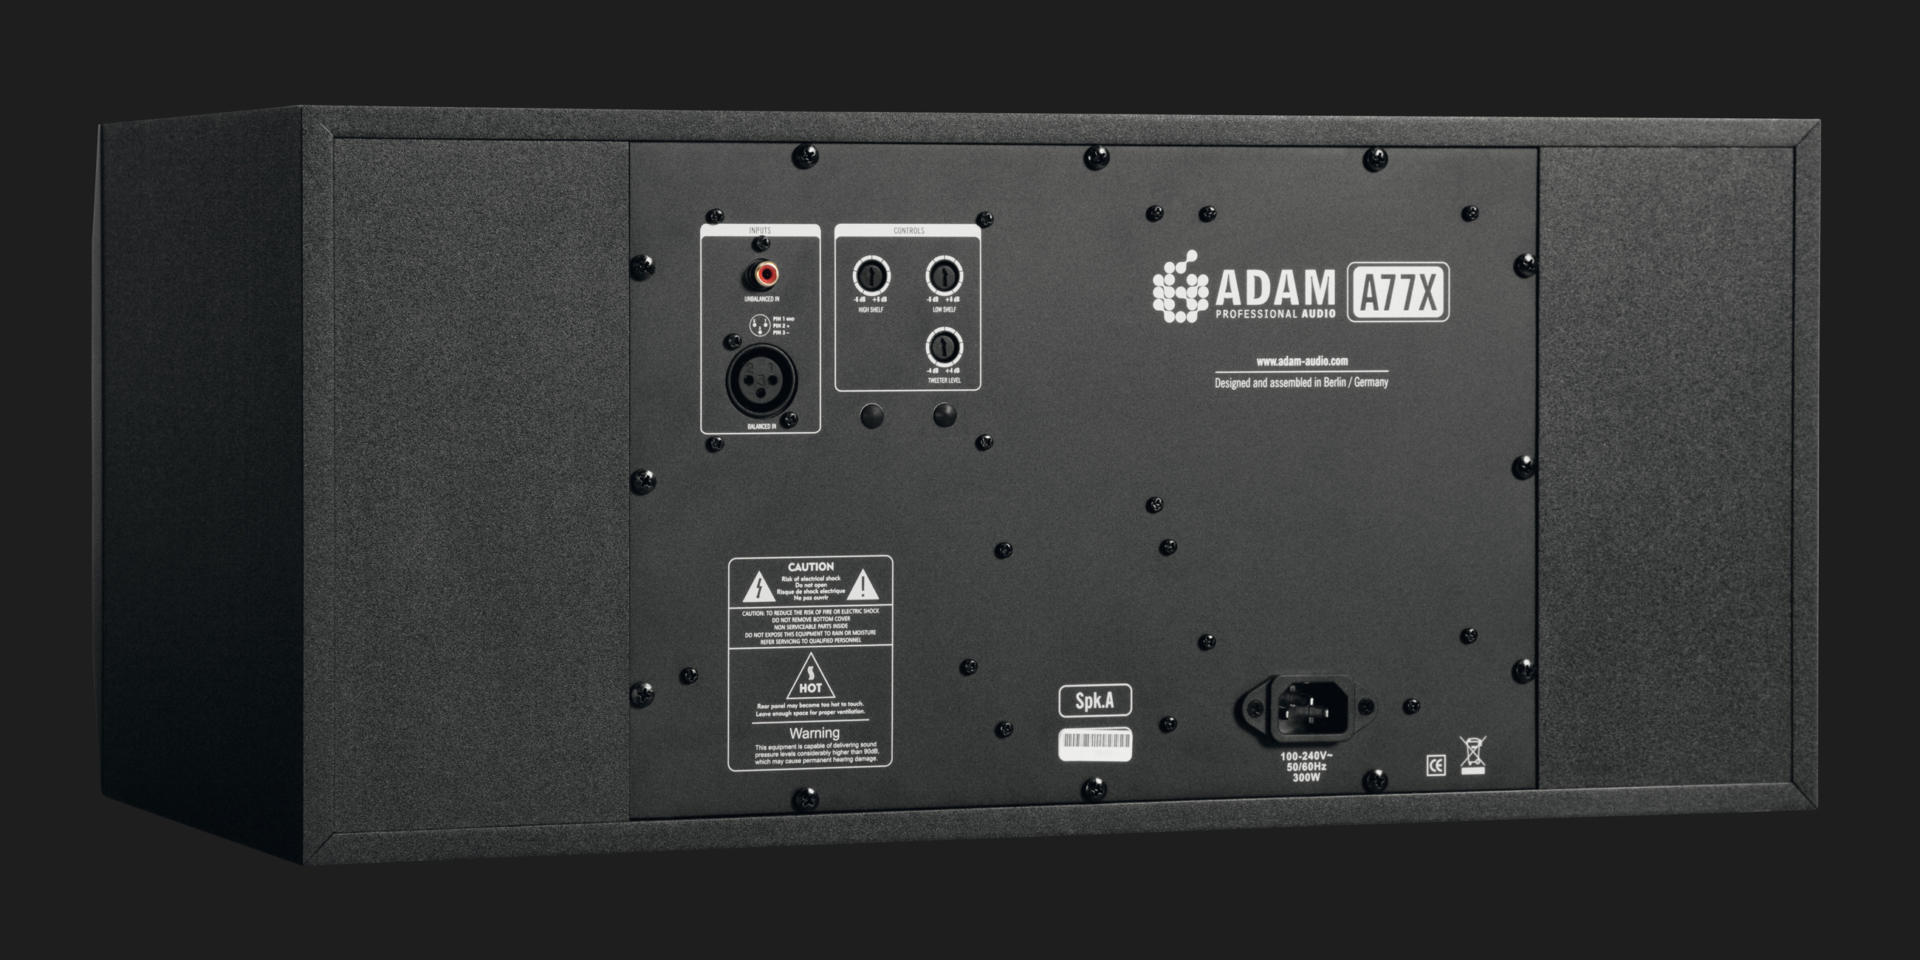 adam-audio-a77x-actice-monitor-backside-1920x960.jpg